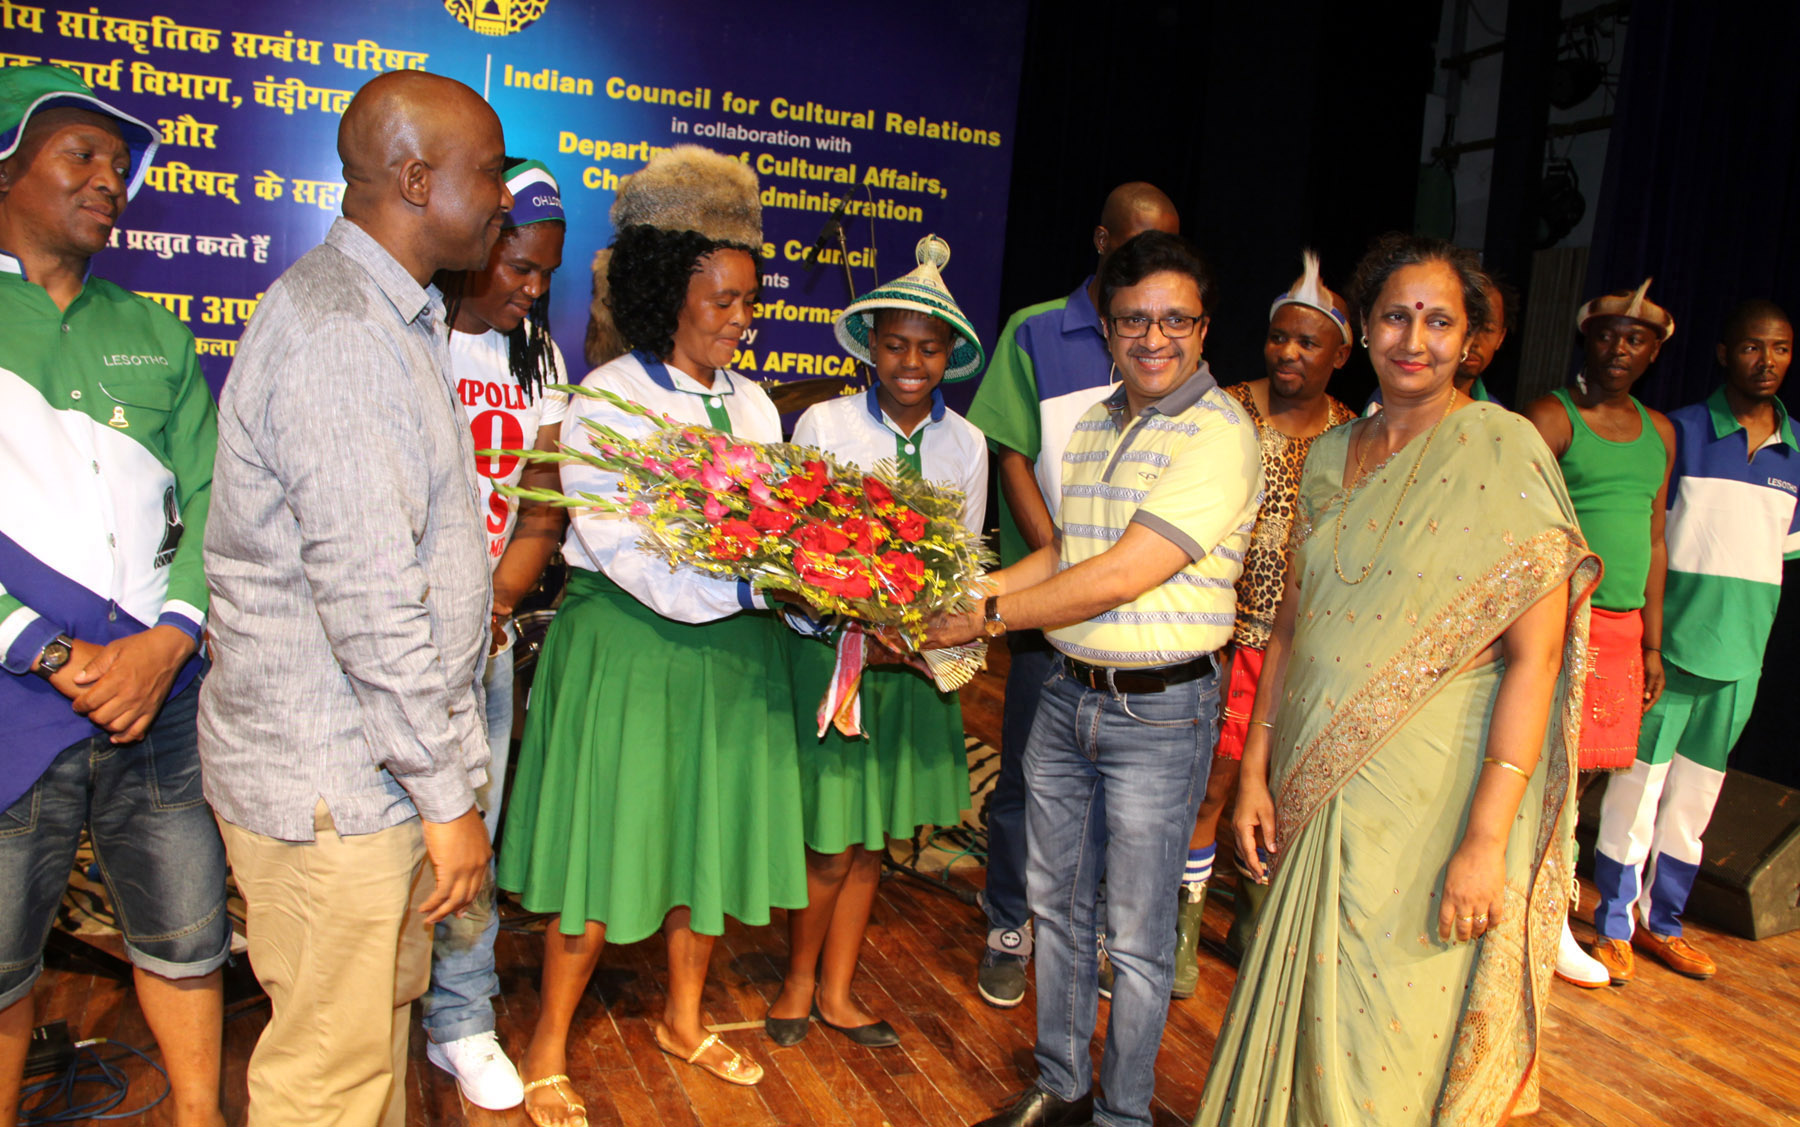 UT Home Secretary, Mr. Anurag Agarwal honouring the artists at the inauguration of a cultural performance by �LIKAKAPA AFRICA� (Music & Dance Group from Lesotho) at Punjab Kala Bhawan, Sector-16, Chandigarh on Saturday, May 28, 2016.